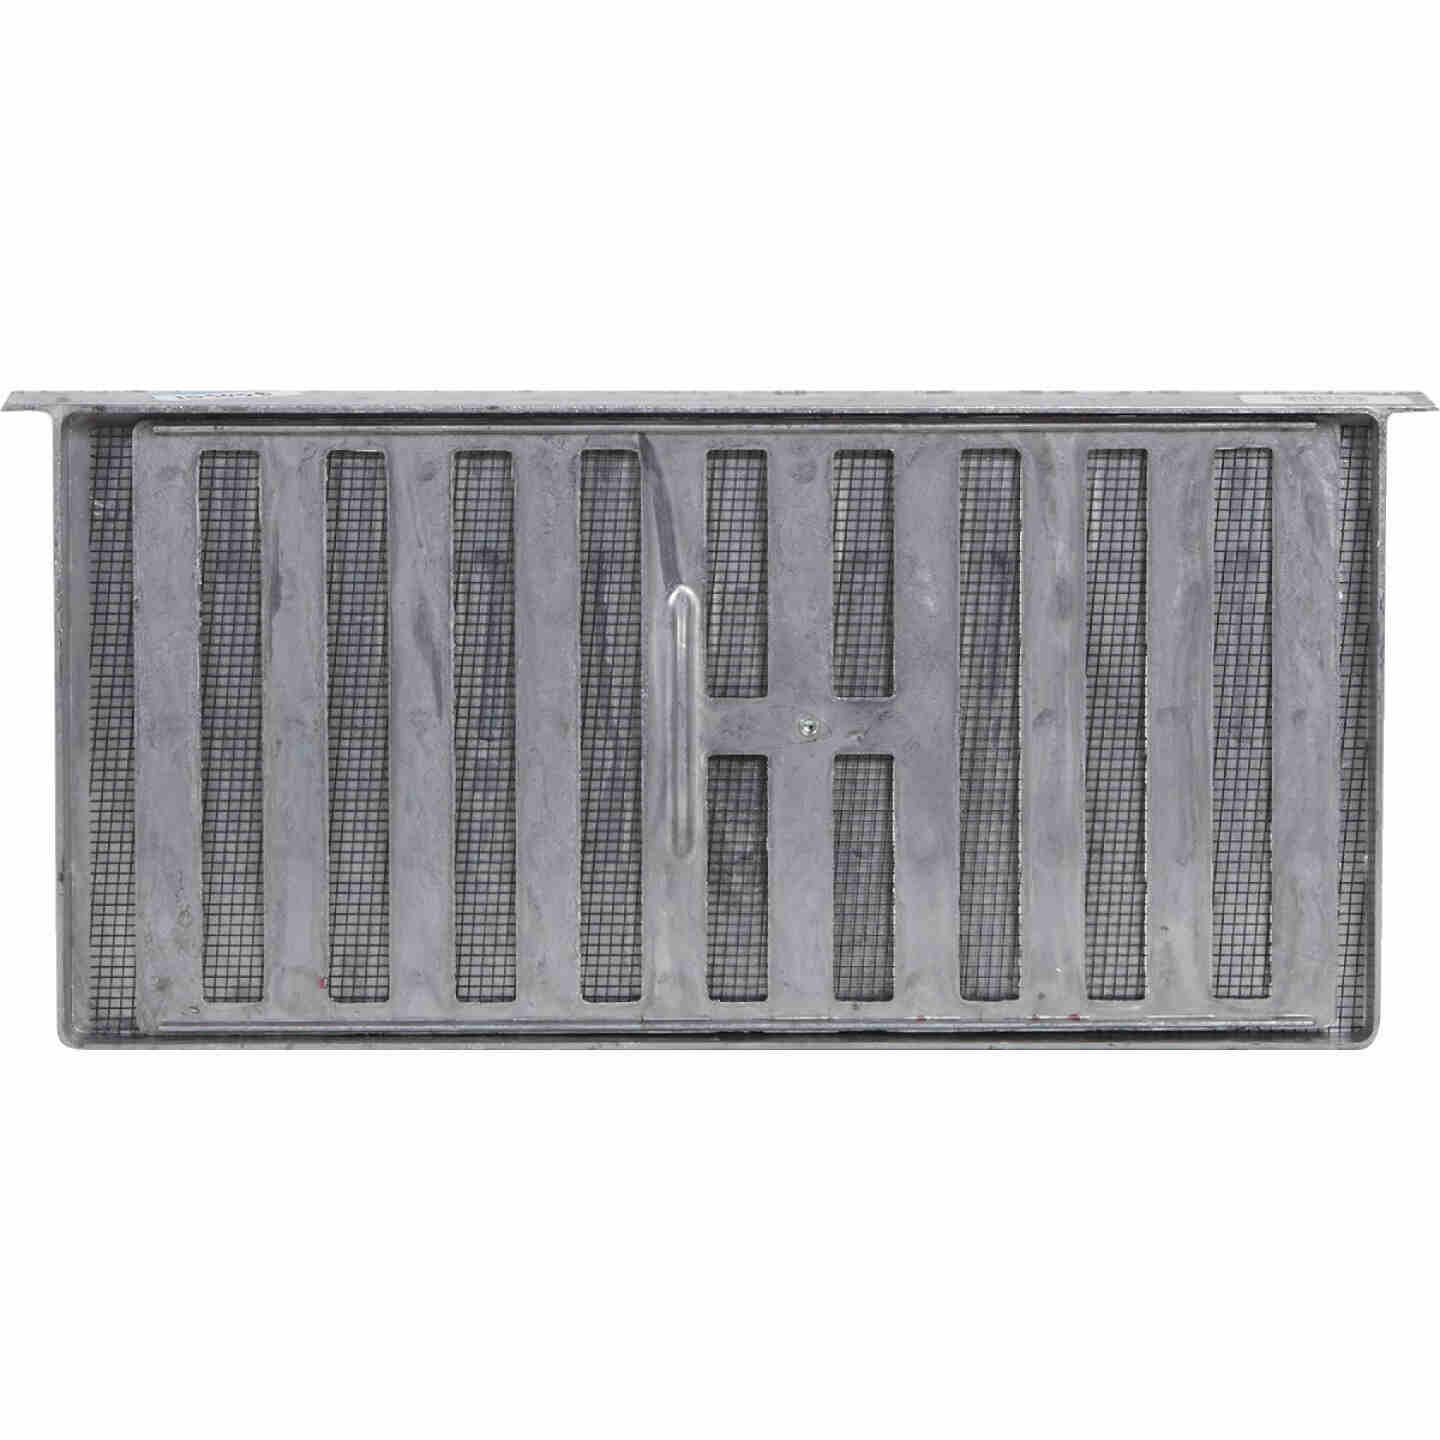 Air Vent 8 In. x 16 In. Aluminum Manual Foundation Vent with Sliding Damper and Lintel Image 2